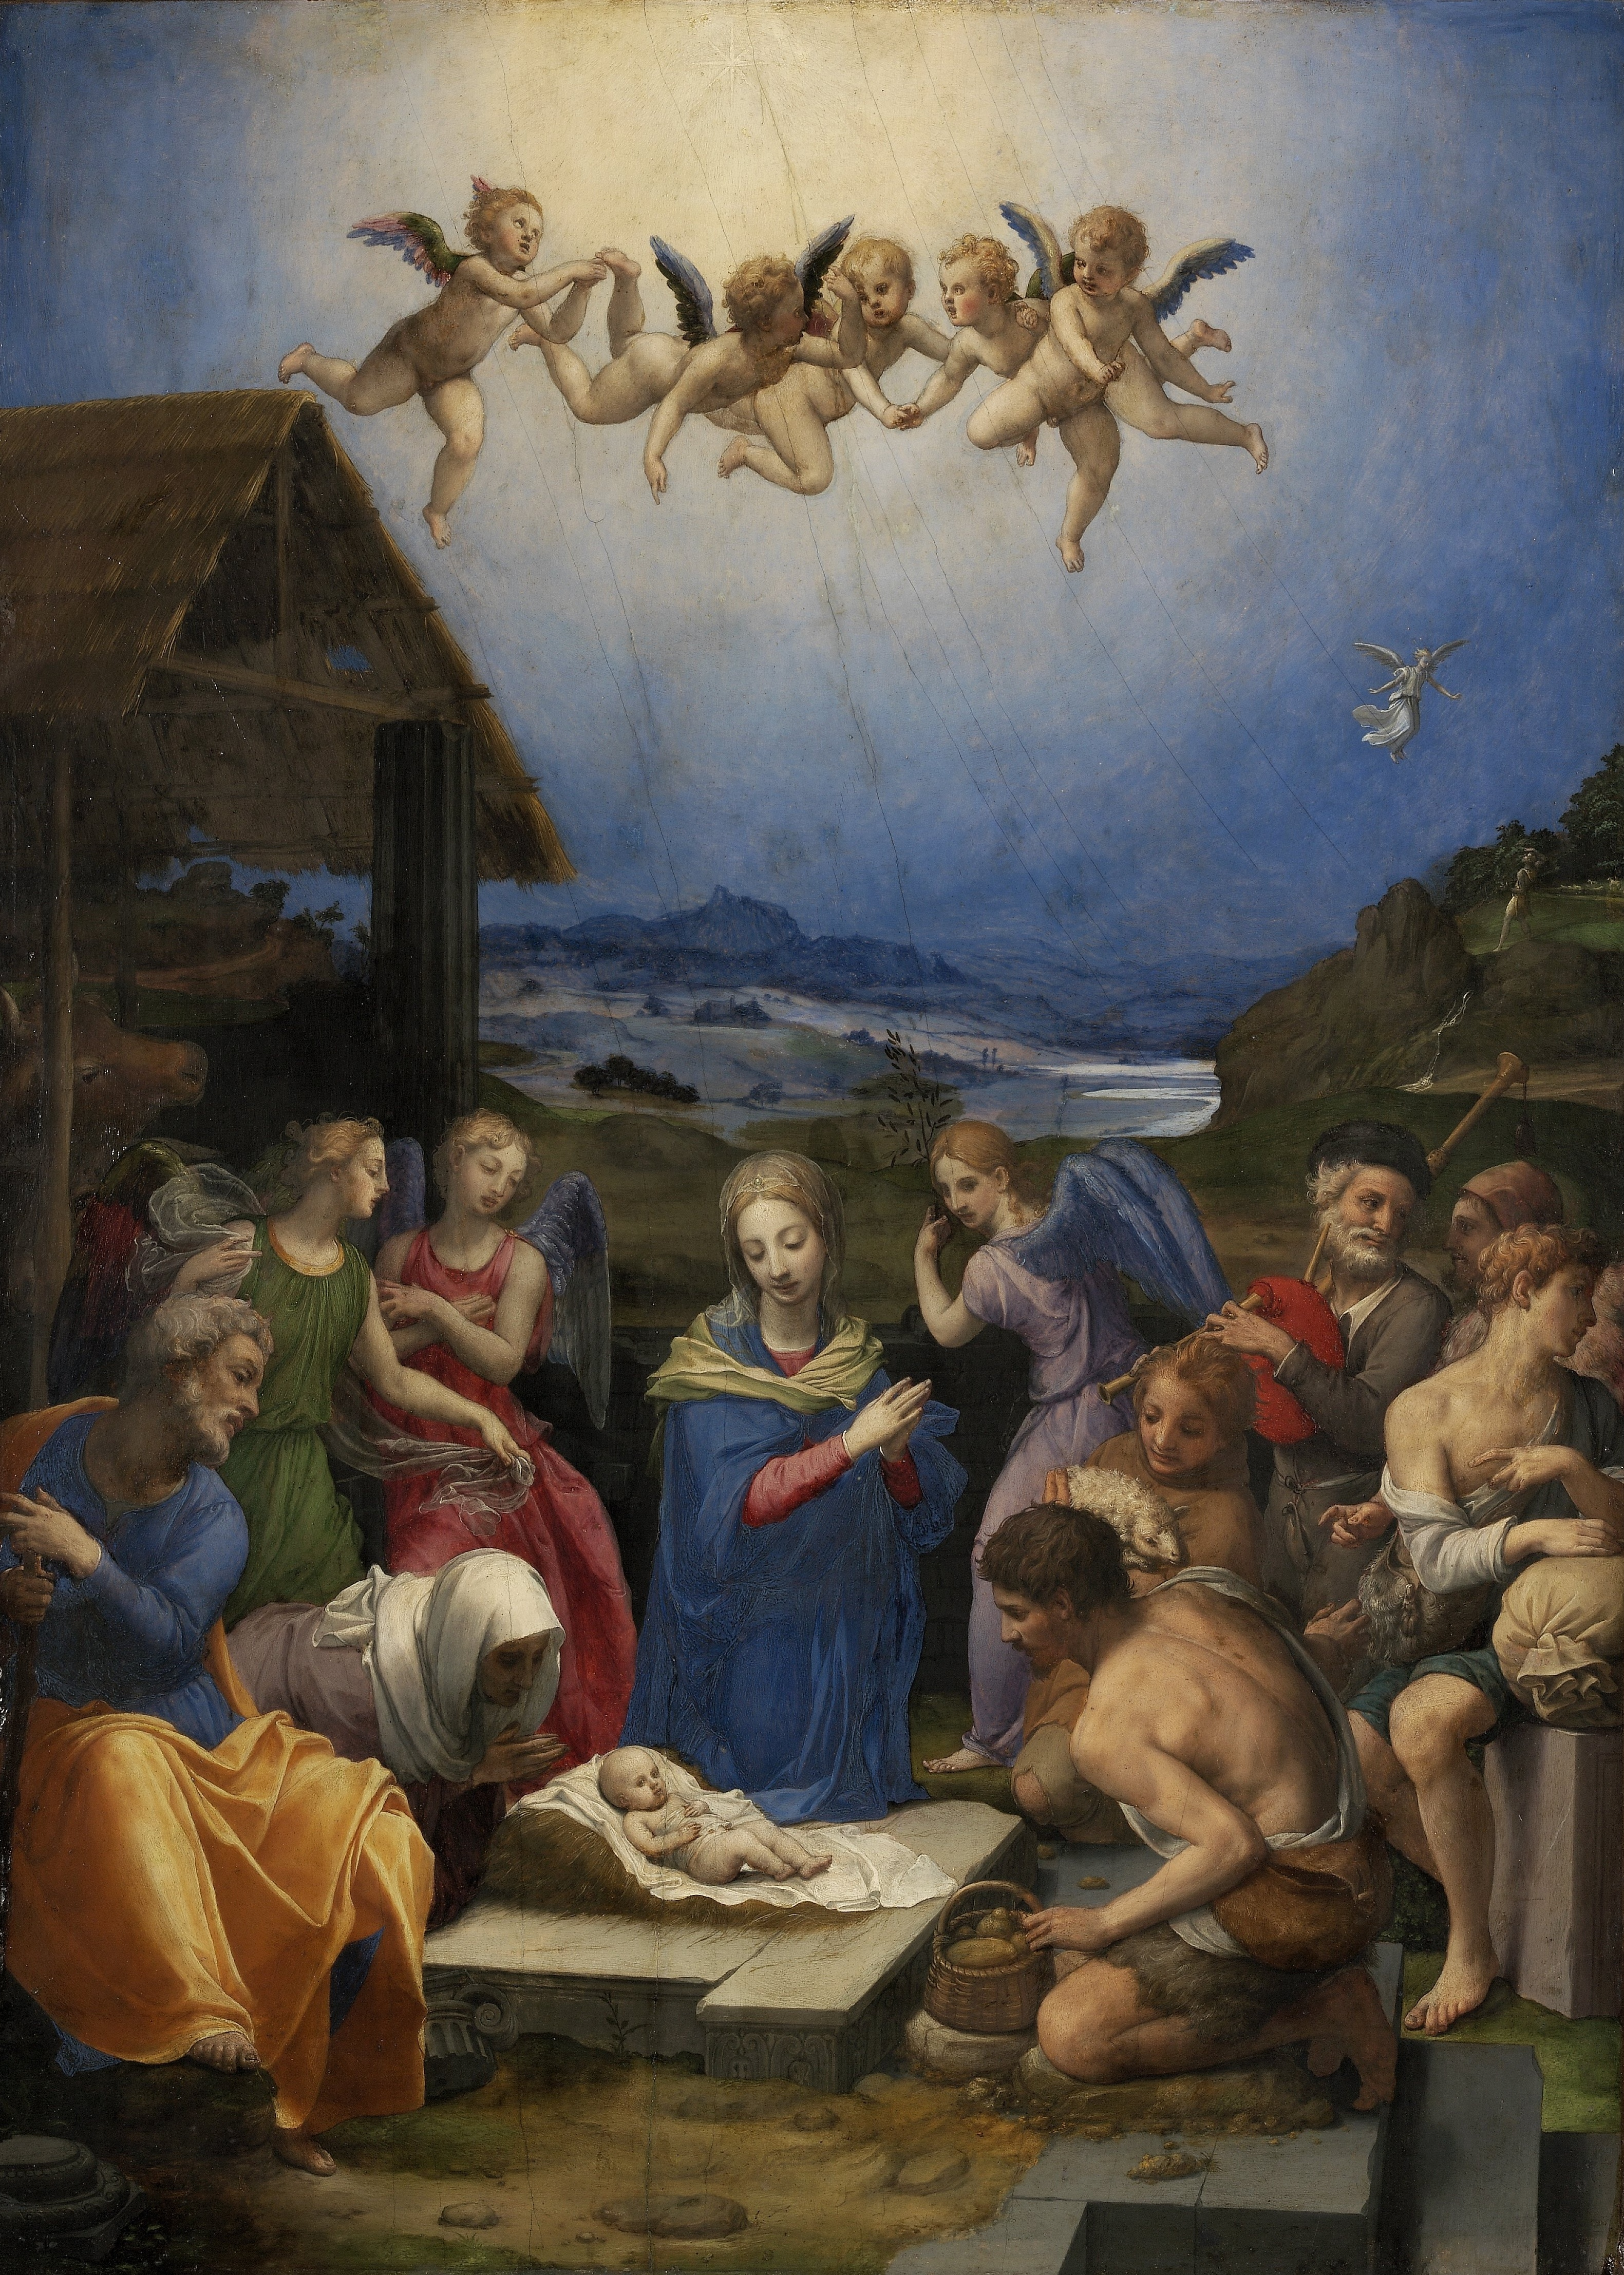 http://upload.wikimedia.org/wikipedia/commons/3/36/Worship_of_the_shepherds_by_bronzino.jpg